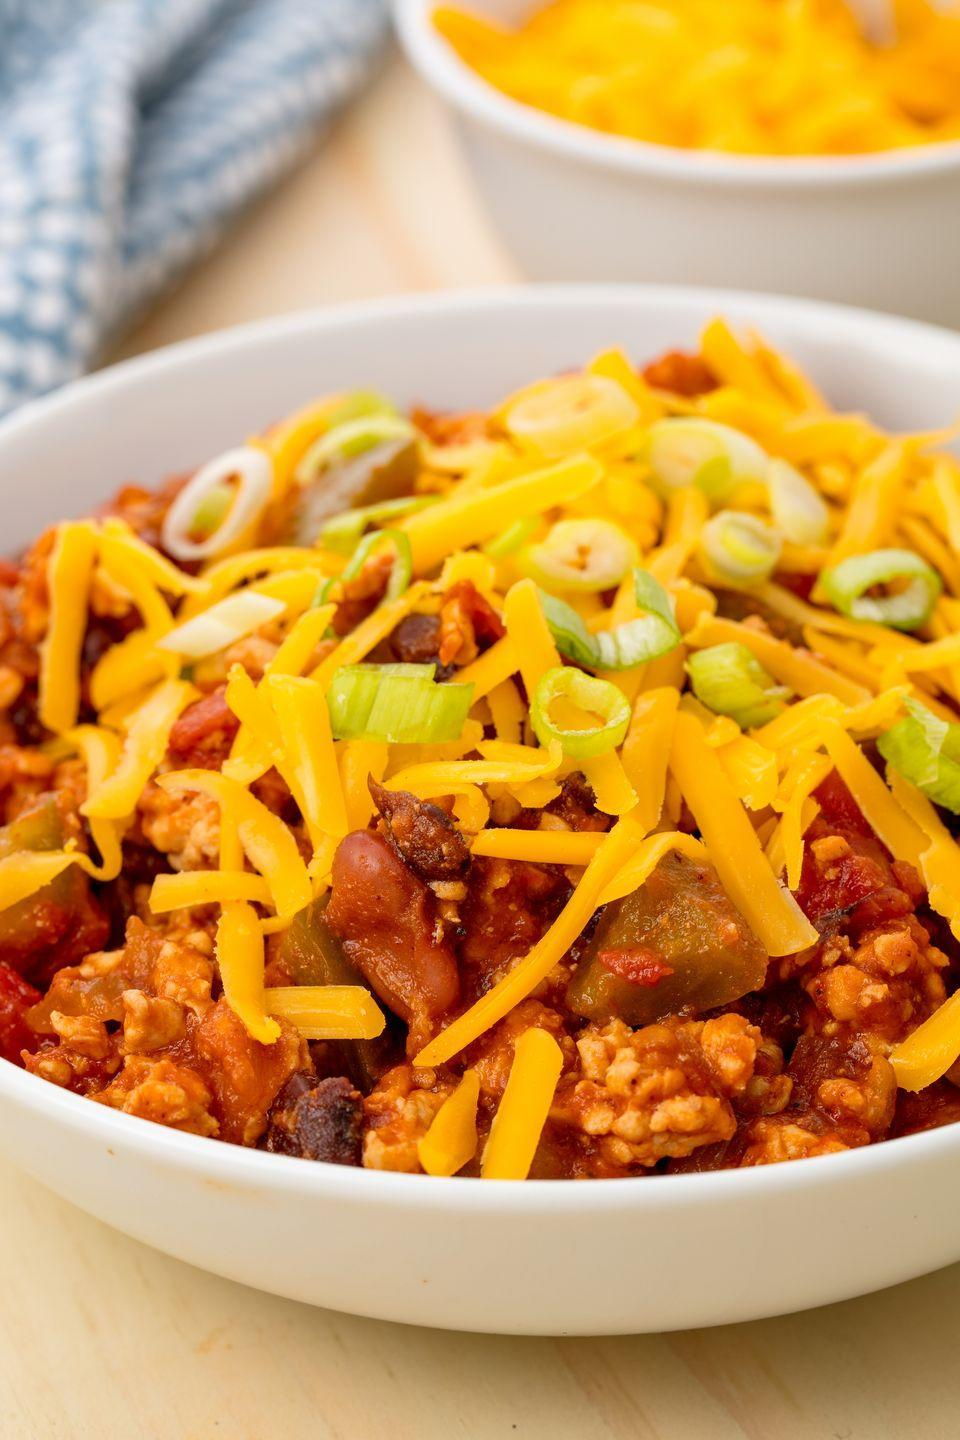 """<p>You'll be making this easy turkey chili on repeat all year long.</p><p>Get the recipe from <a href=""""https://www.delish.com/cooking/recipe-ideas/recipes/a55200/easy-turkey-slow-cooker-chili-recipe/"""" rel=""""nofollow noopener"""" target=""""_blank"""" data-ylk=""""slk:Delish"""" class=""""link rapid-noclick-resp"""">Delish</a>.</p>"""